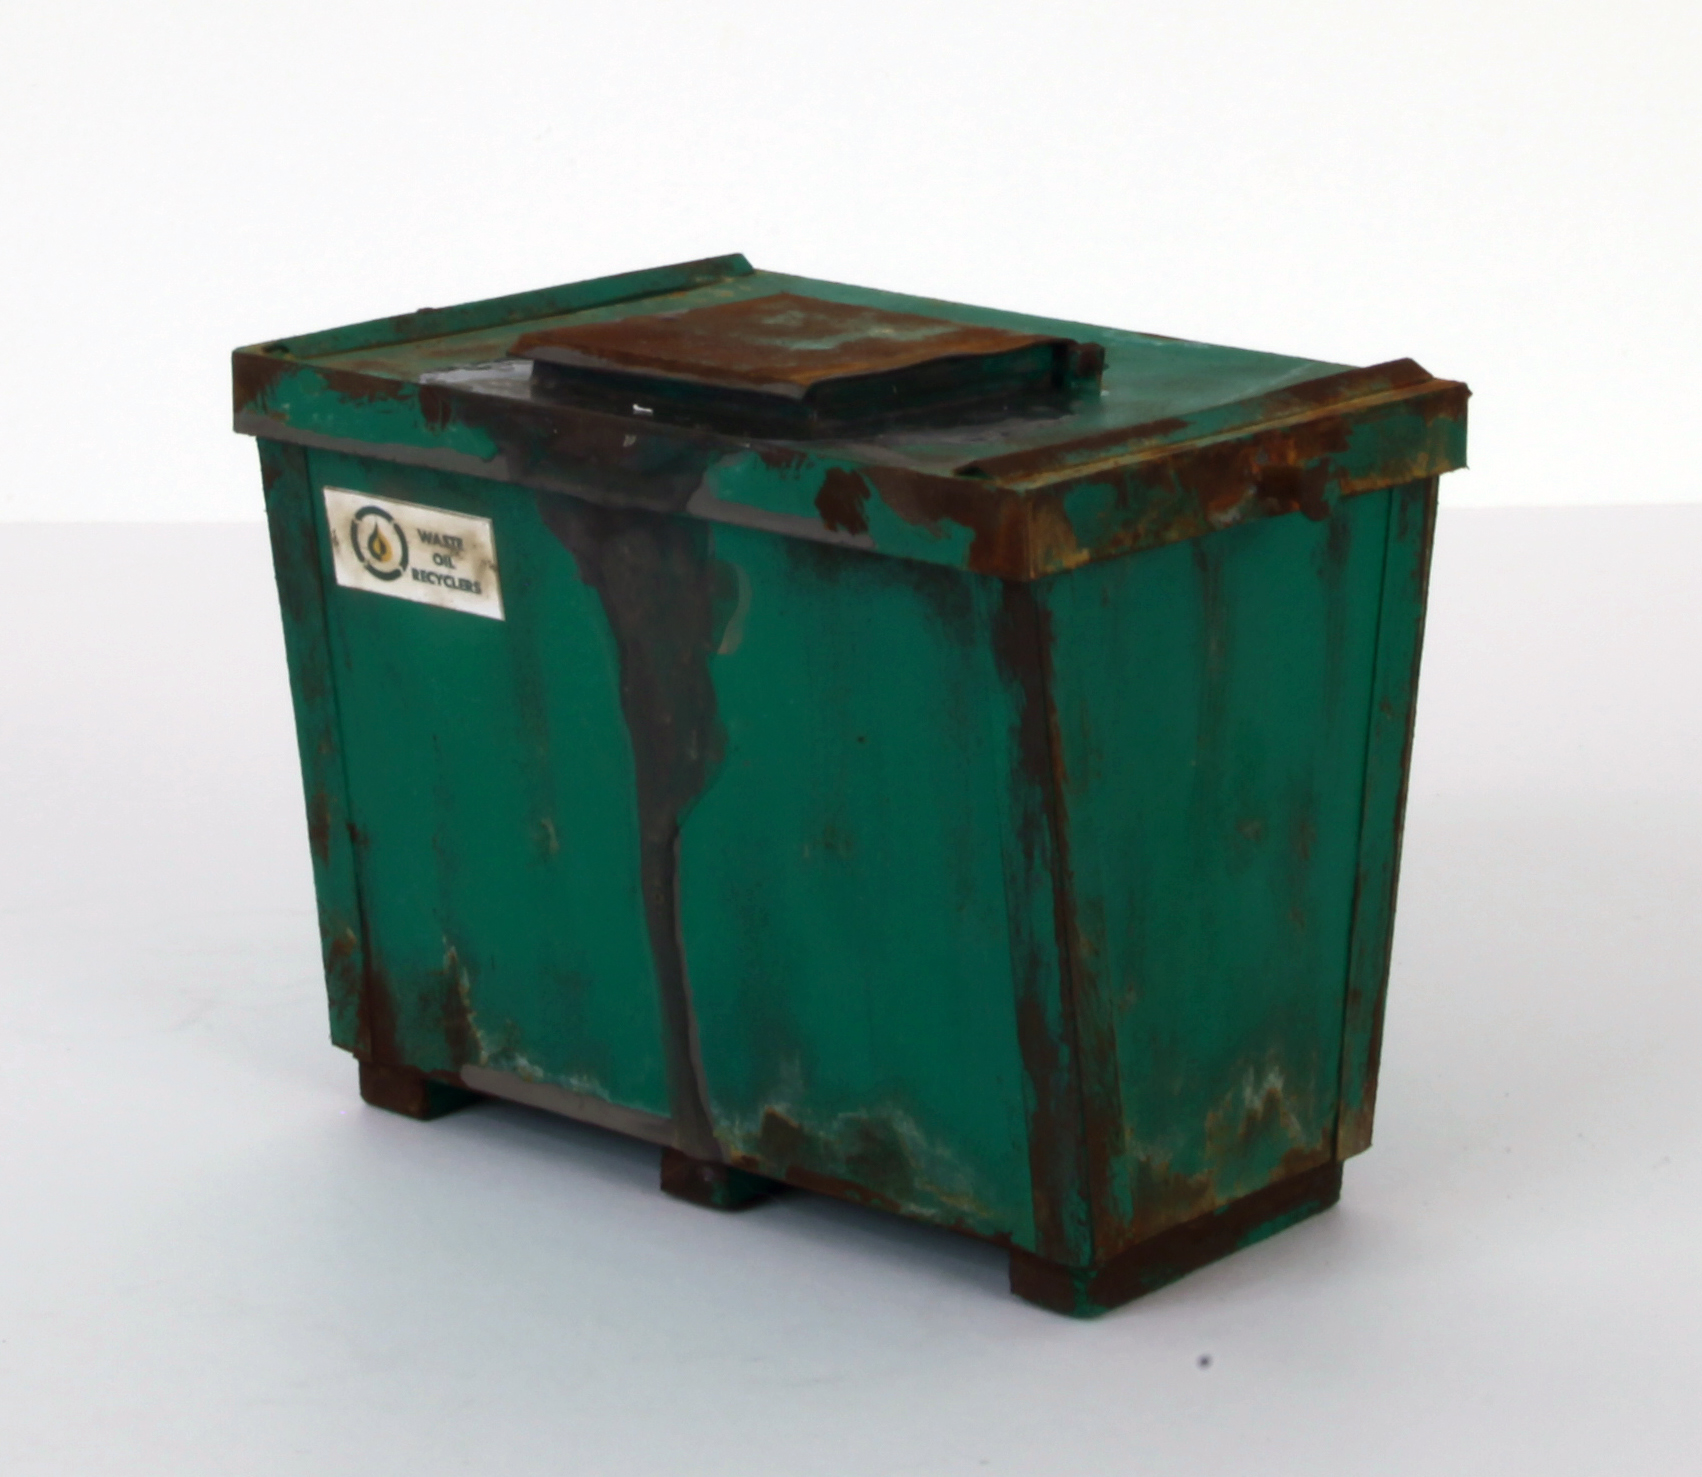 Oil Recovery Dumpster